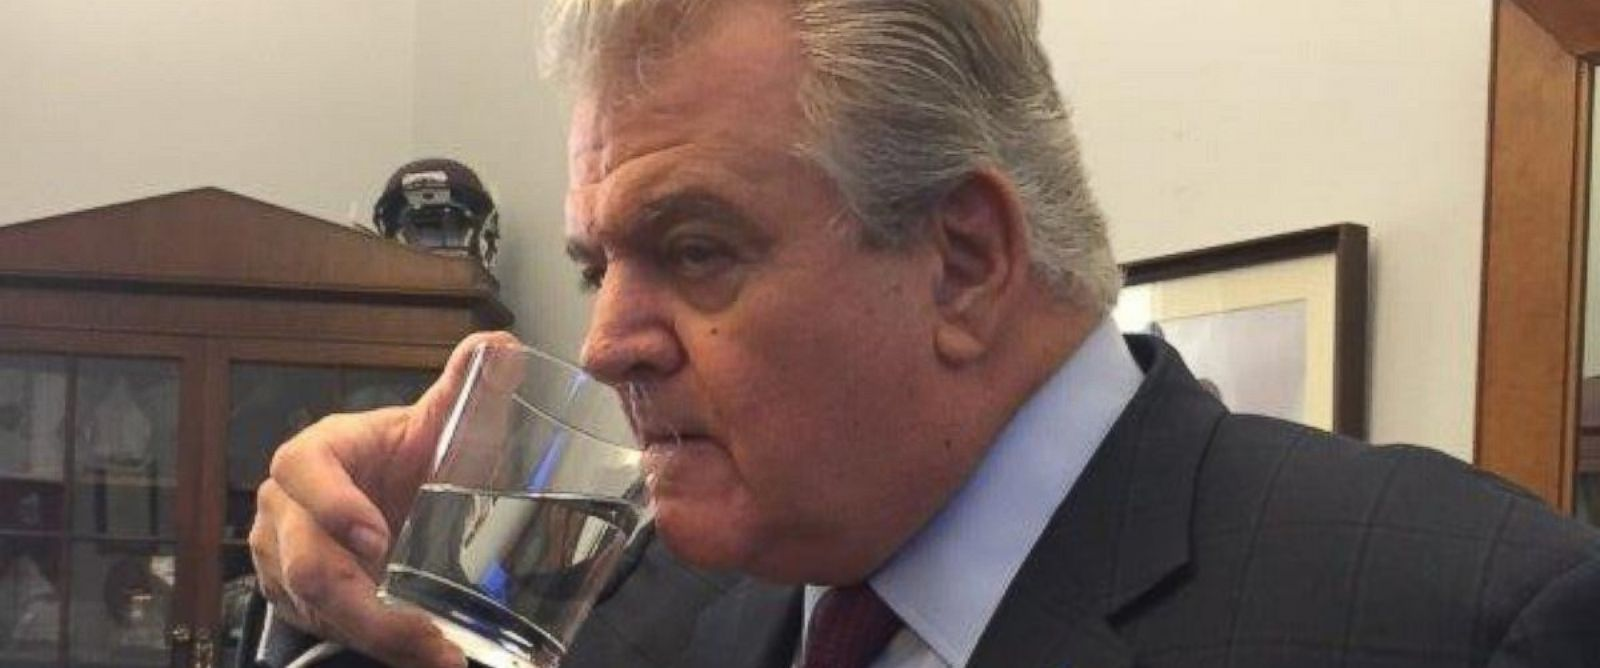 PHOTO: Representative Bob Brady, D-Pa., drinks out of the glass that Pope Francis drank out of during his speech to Congress Sept. 25, 2015.